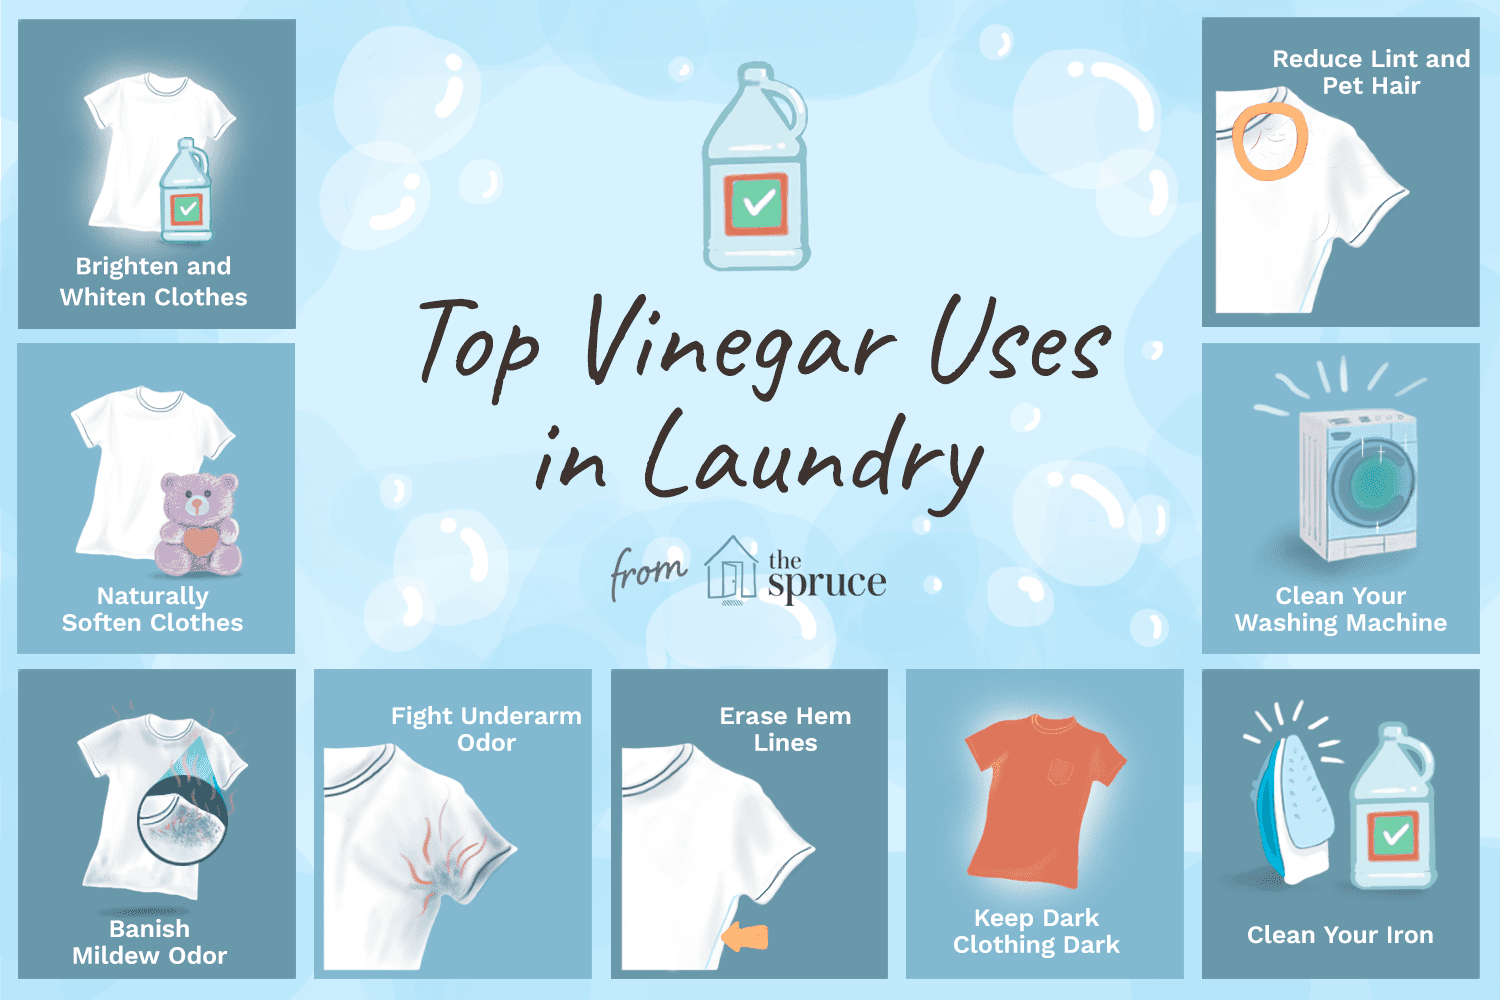 Top 10 Reasons to Use Vinegar in Laundry